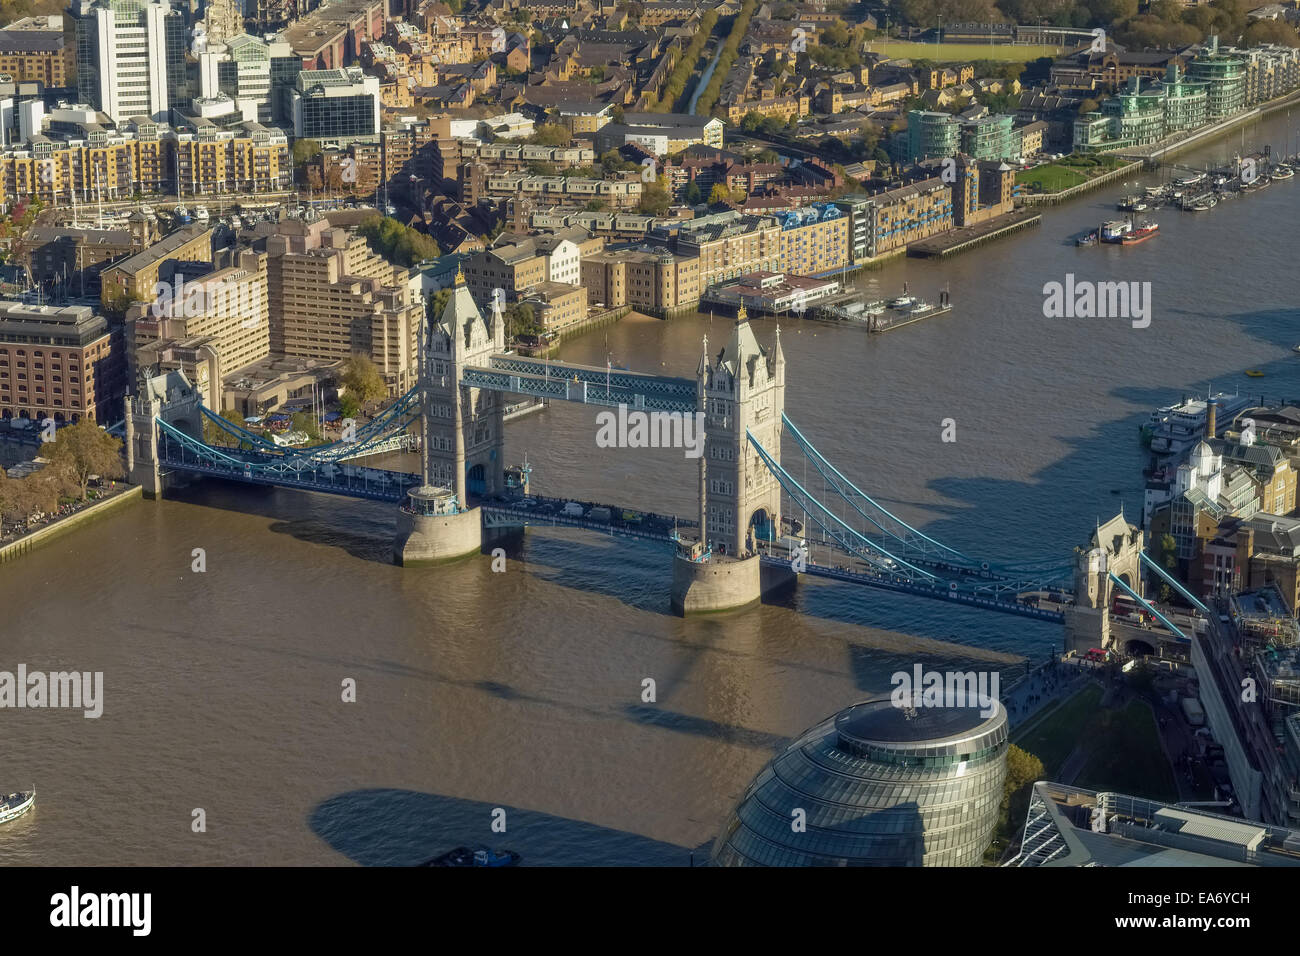 Aerial view of Tower Bridge across the River Thames, London - Stock Image